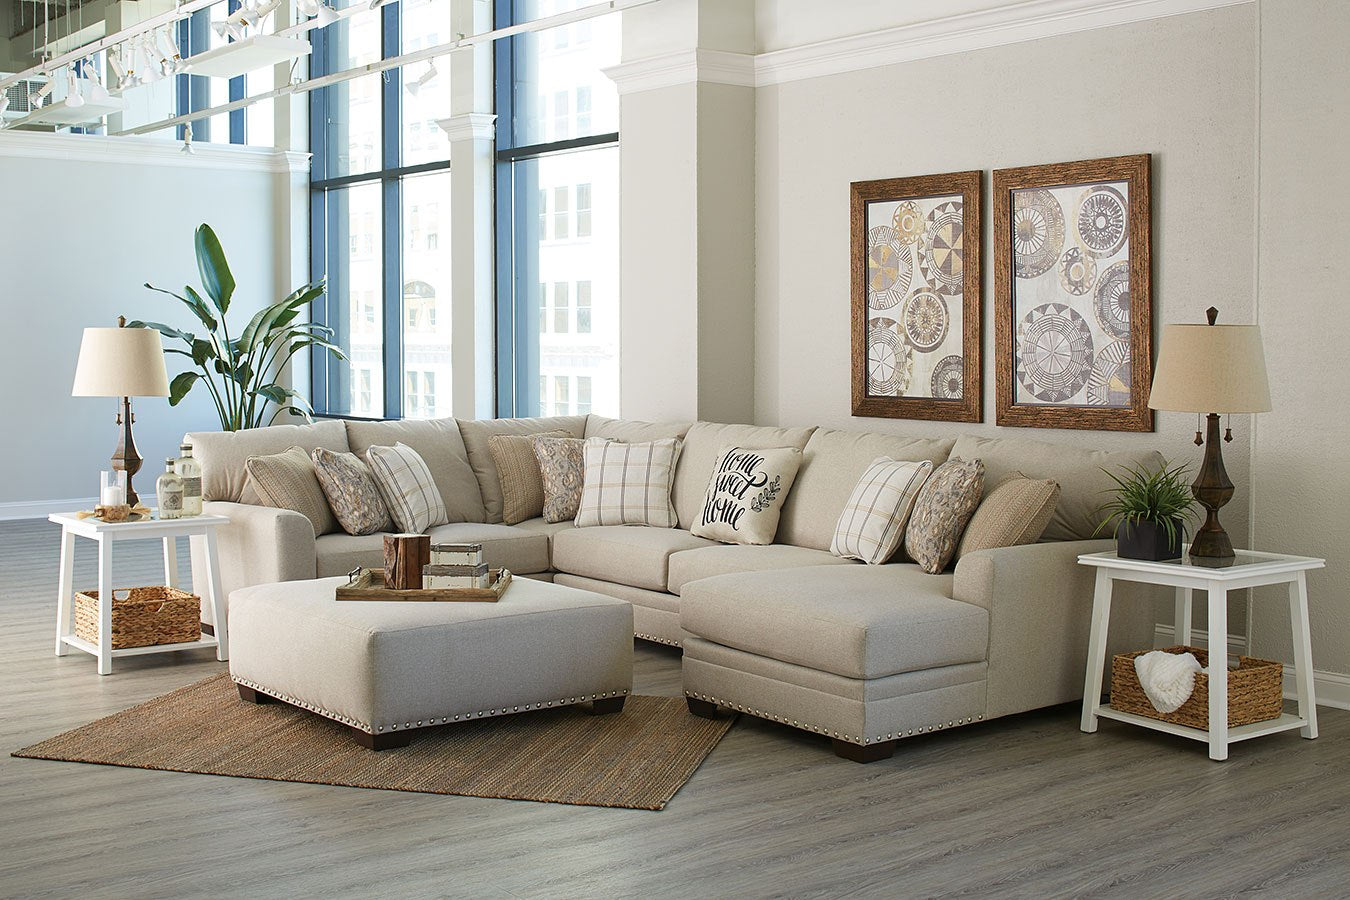 Home Sweet Home Farmhouse Chaise Sectional